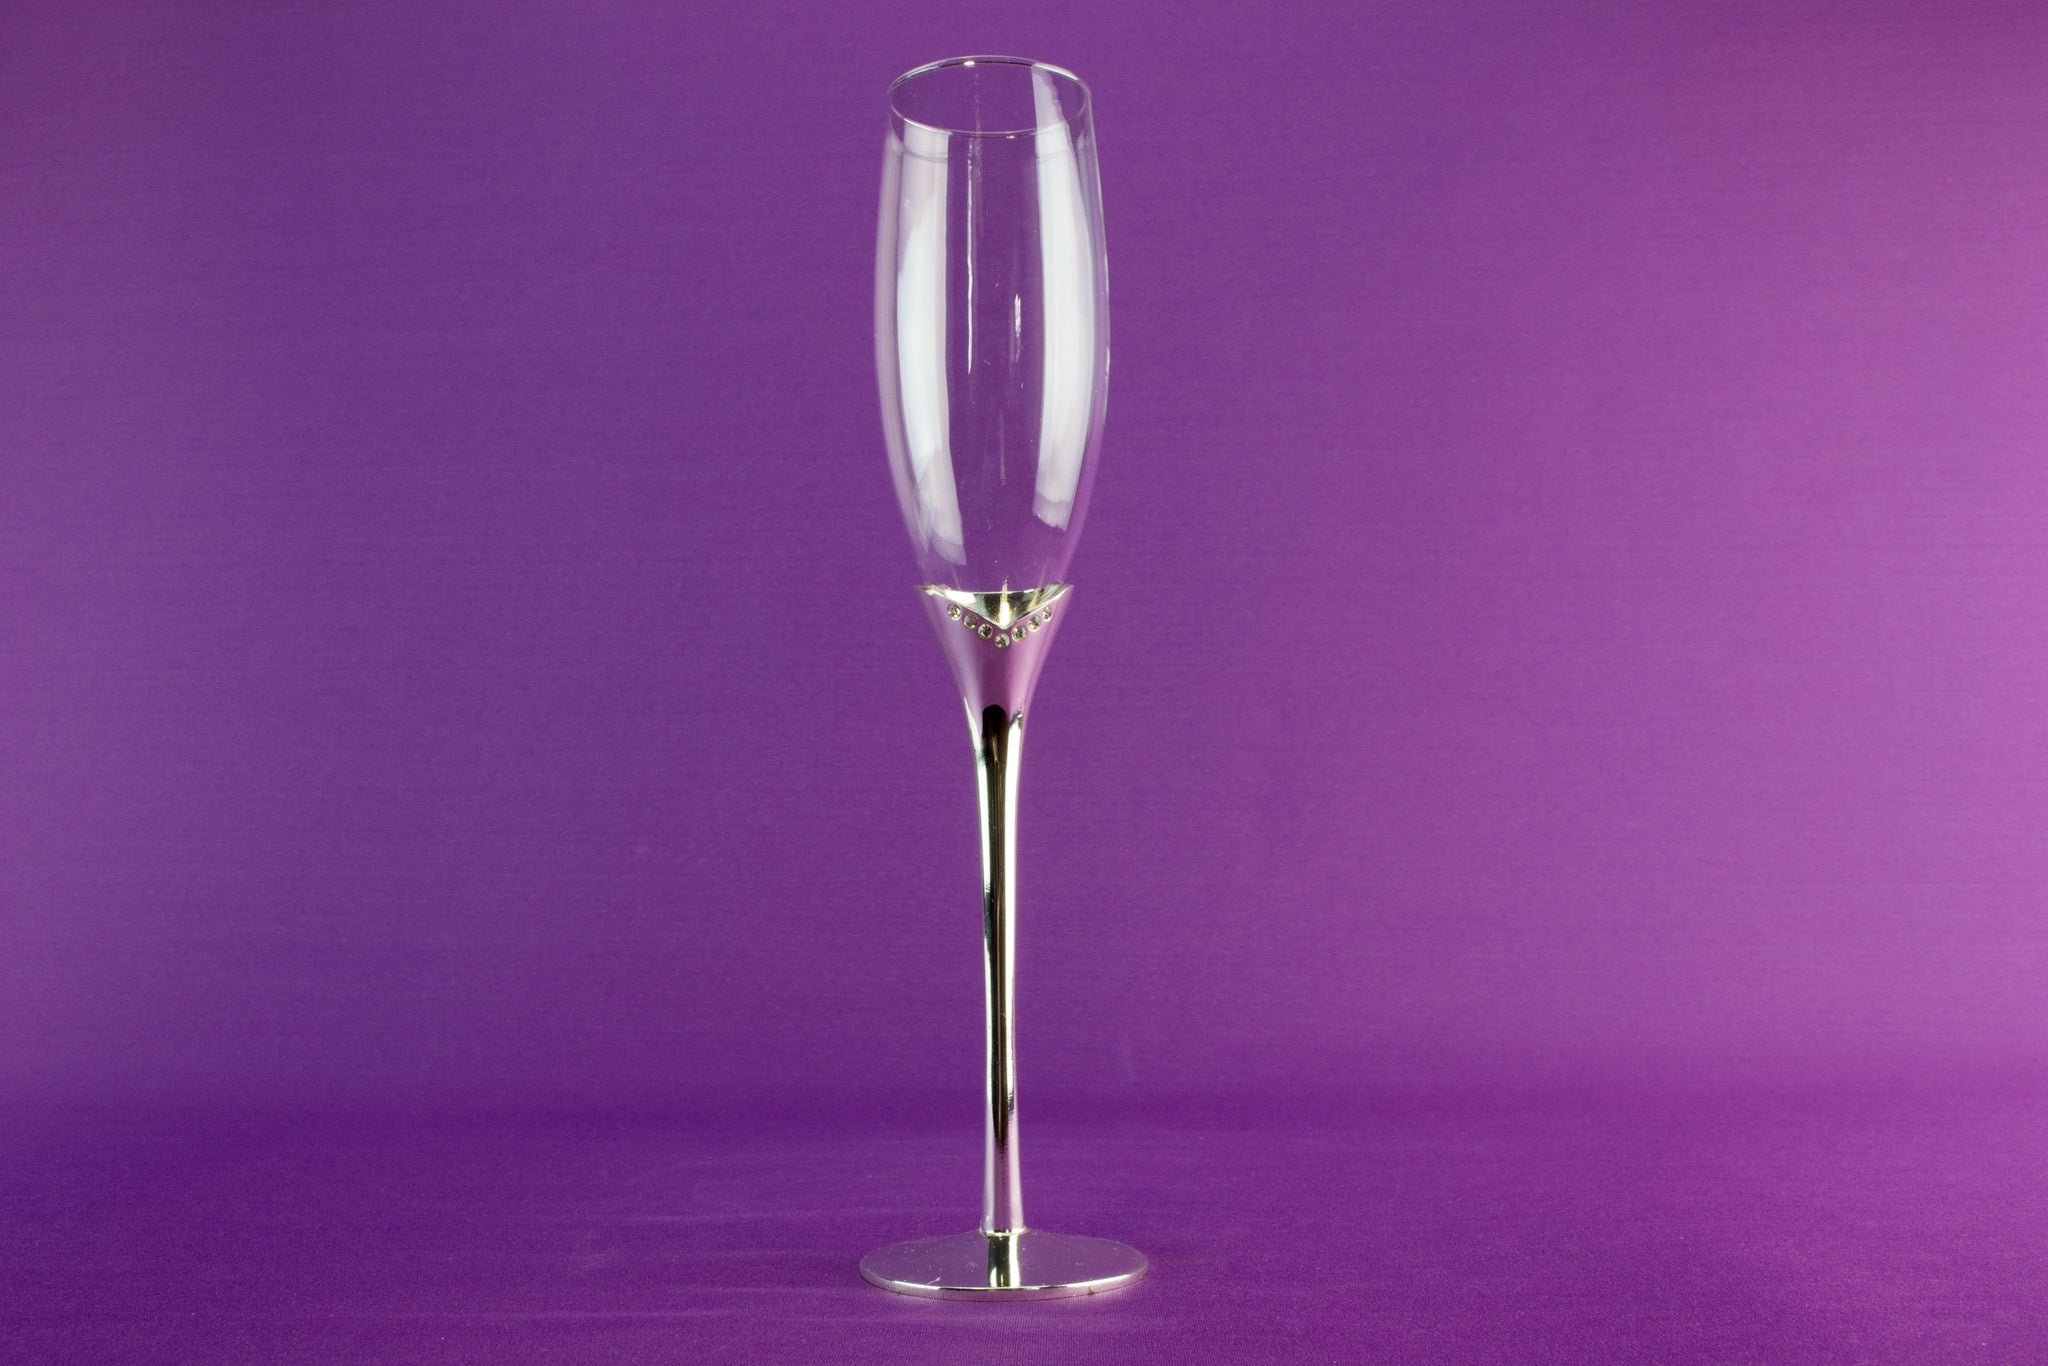 2 tall champagne flutes by Nobile by Lavish Shoestring